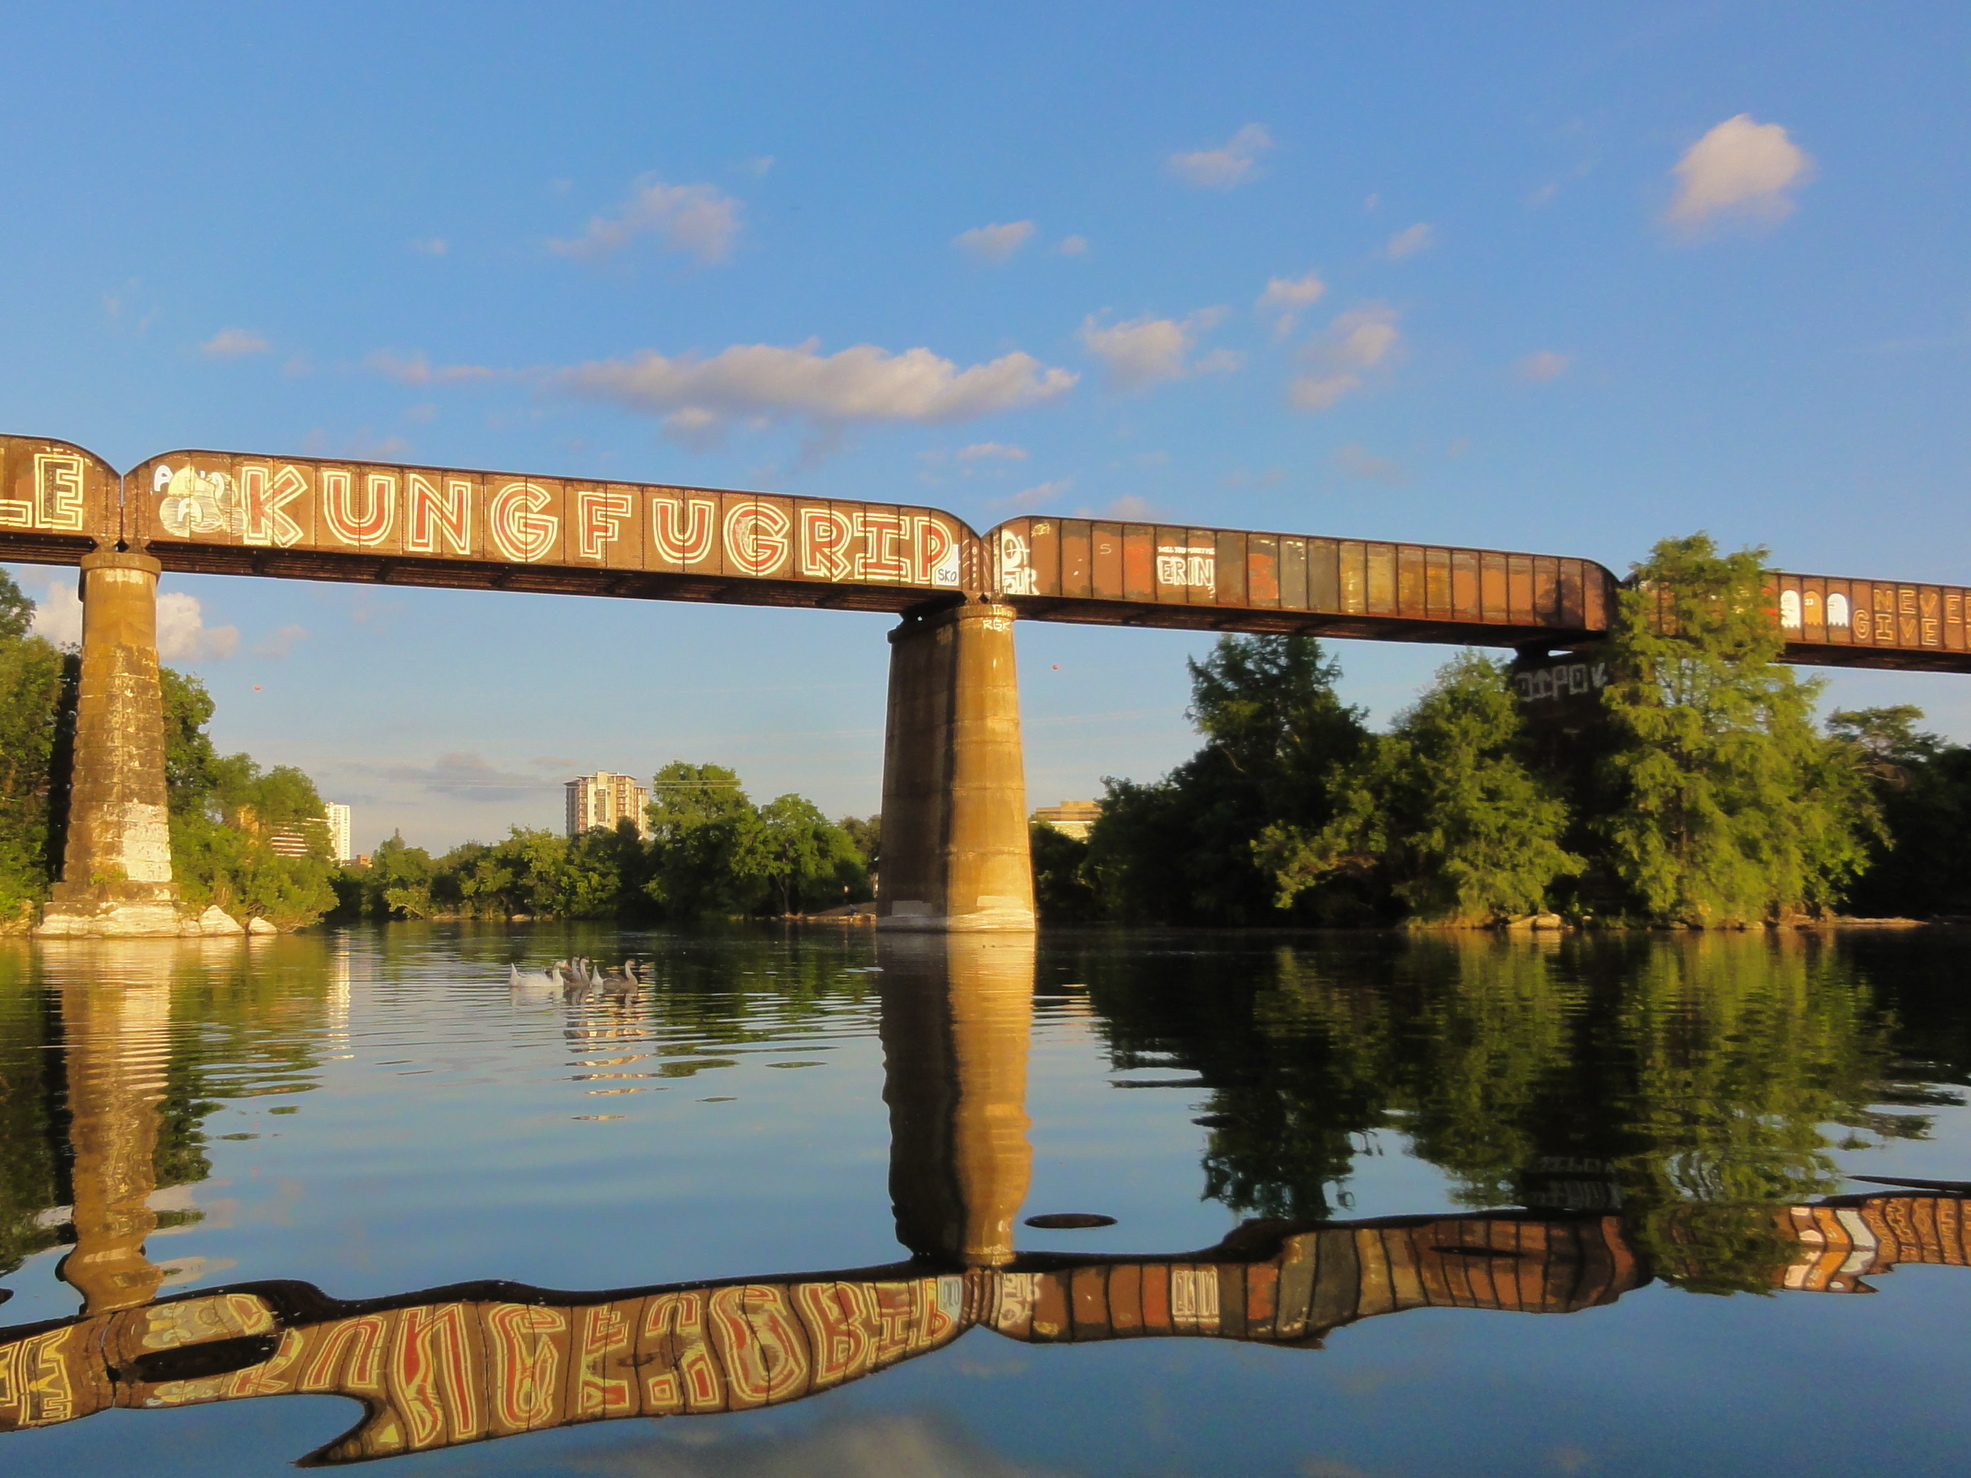 Railroad Bridge Mural